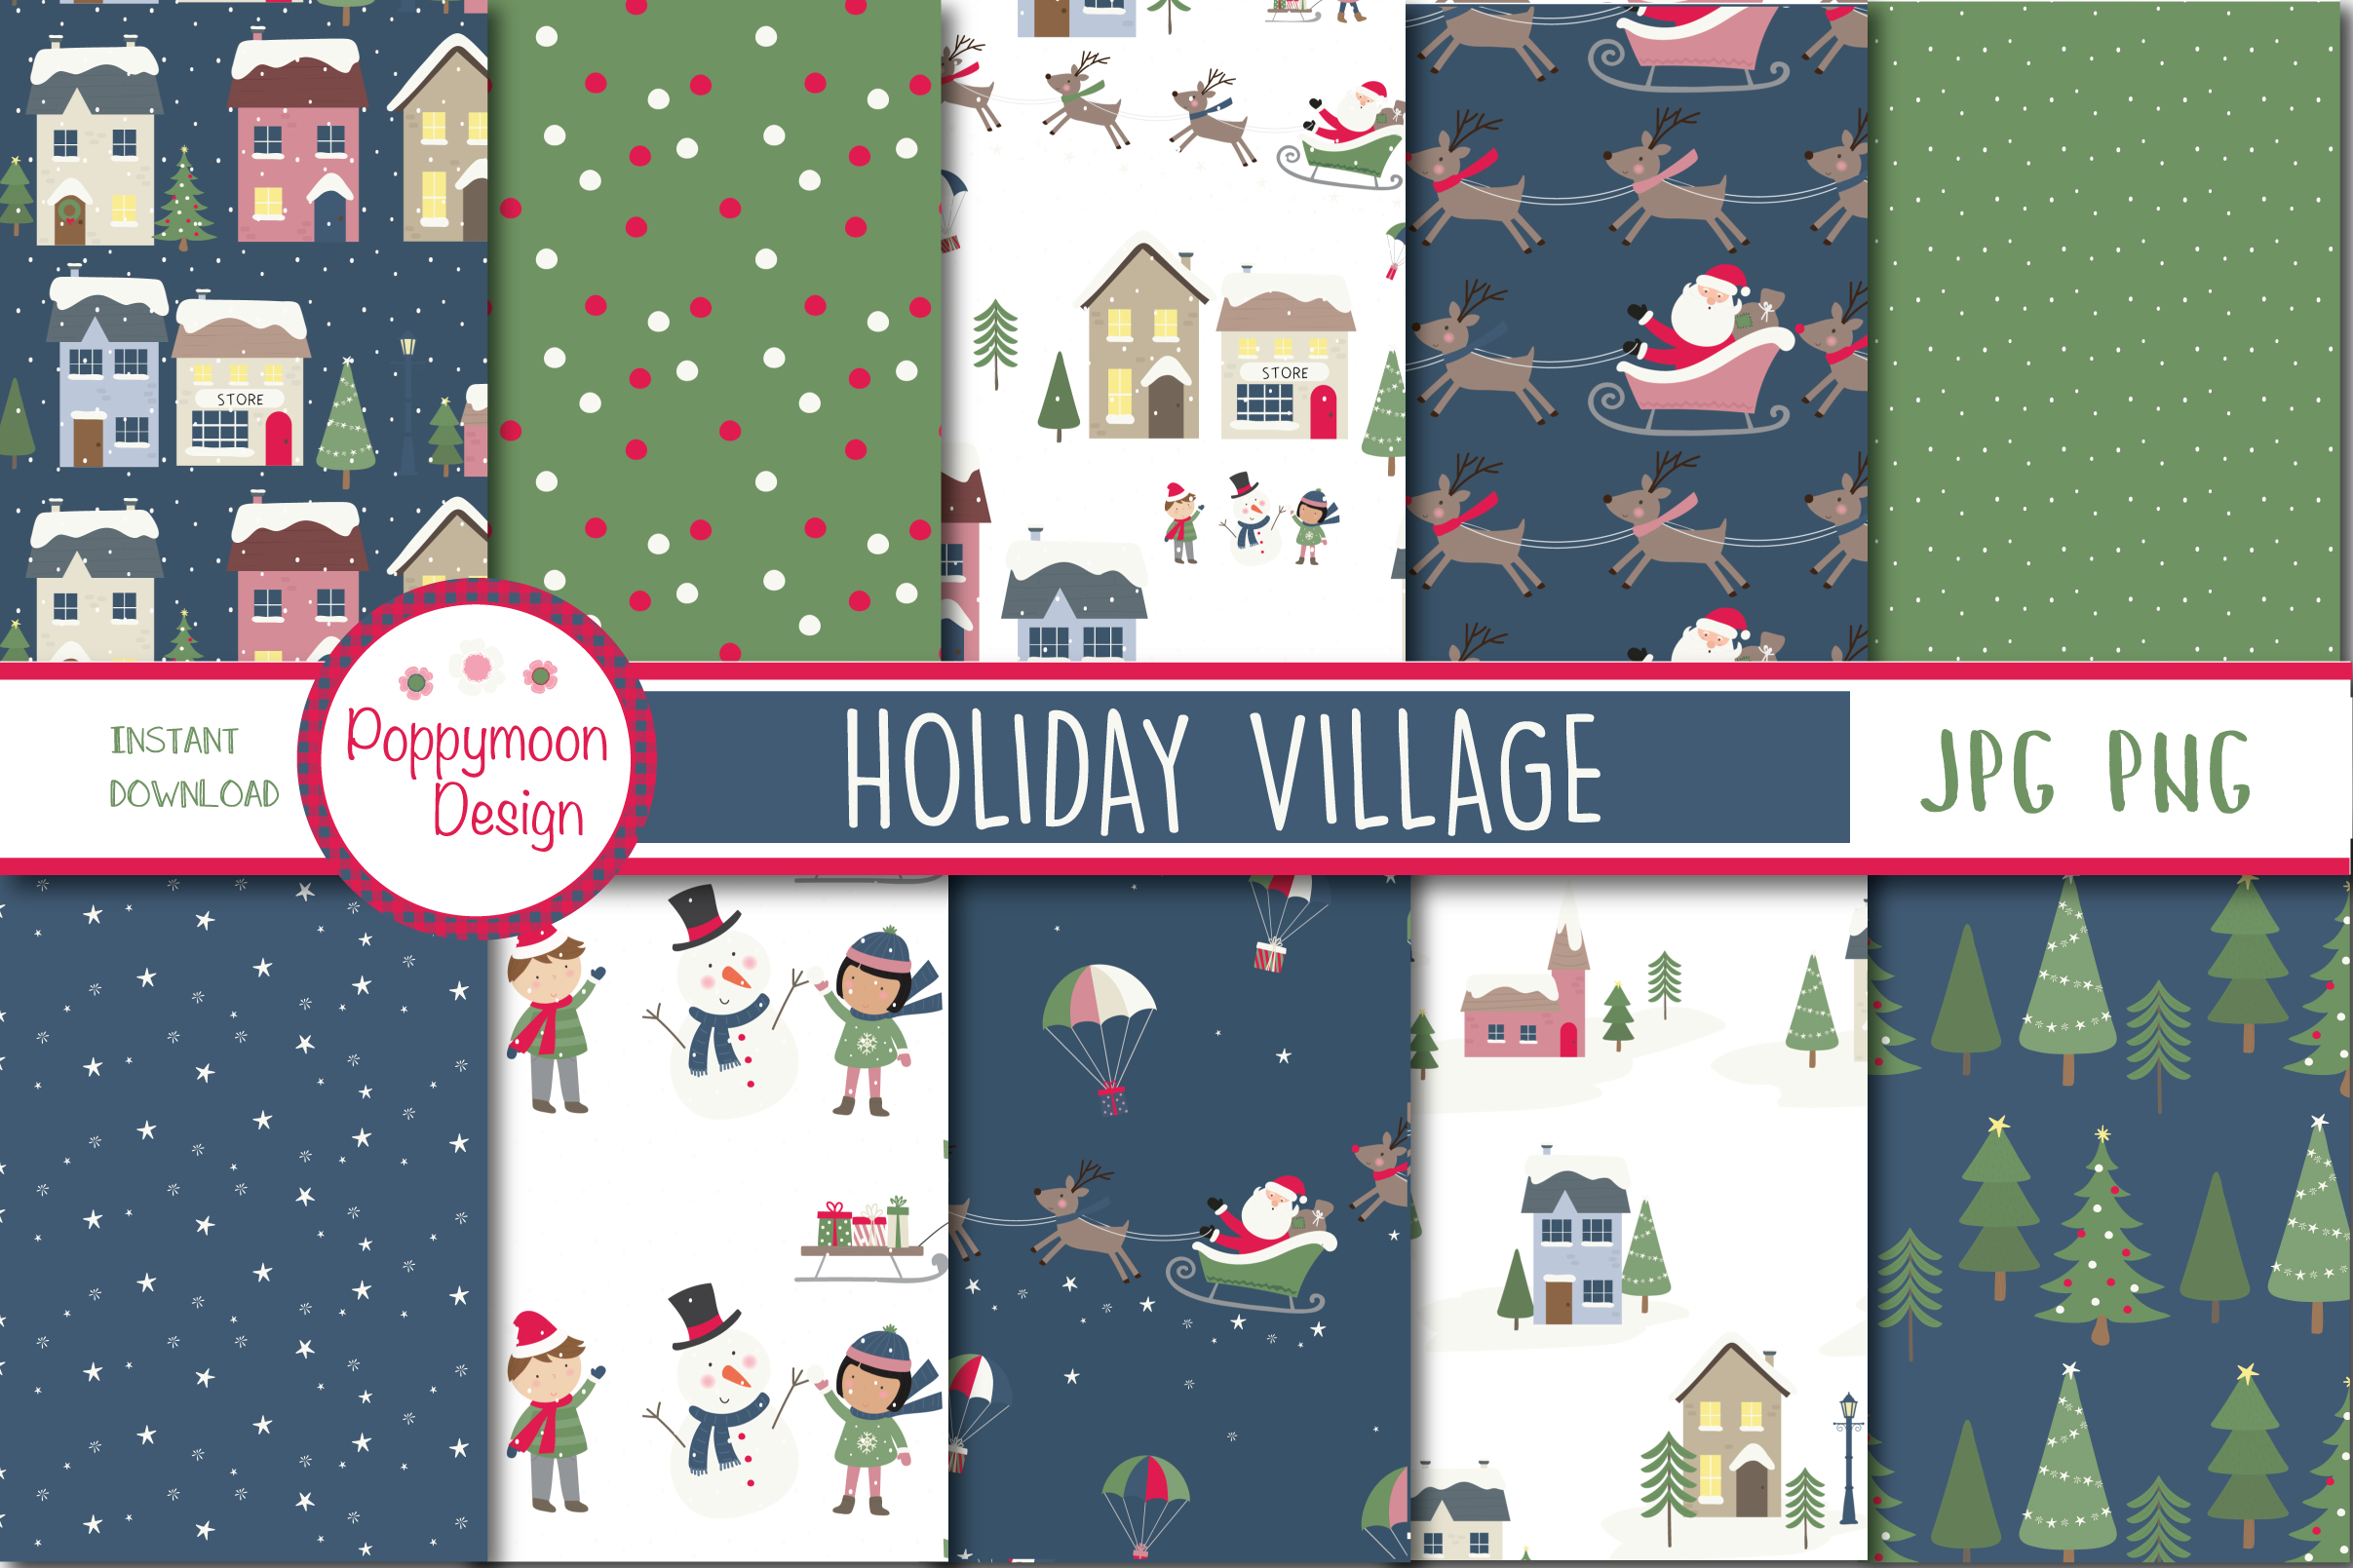 Holiday village clipart and paper example image 4